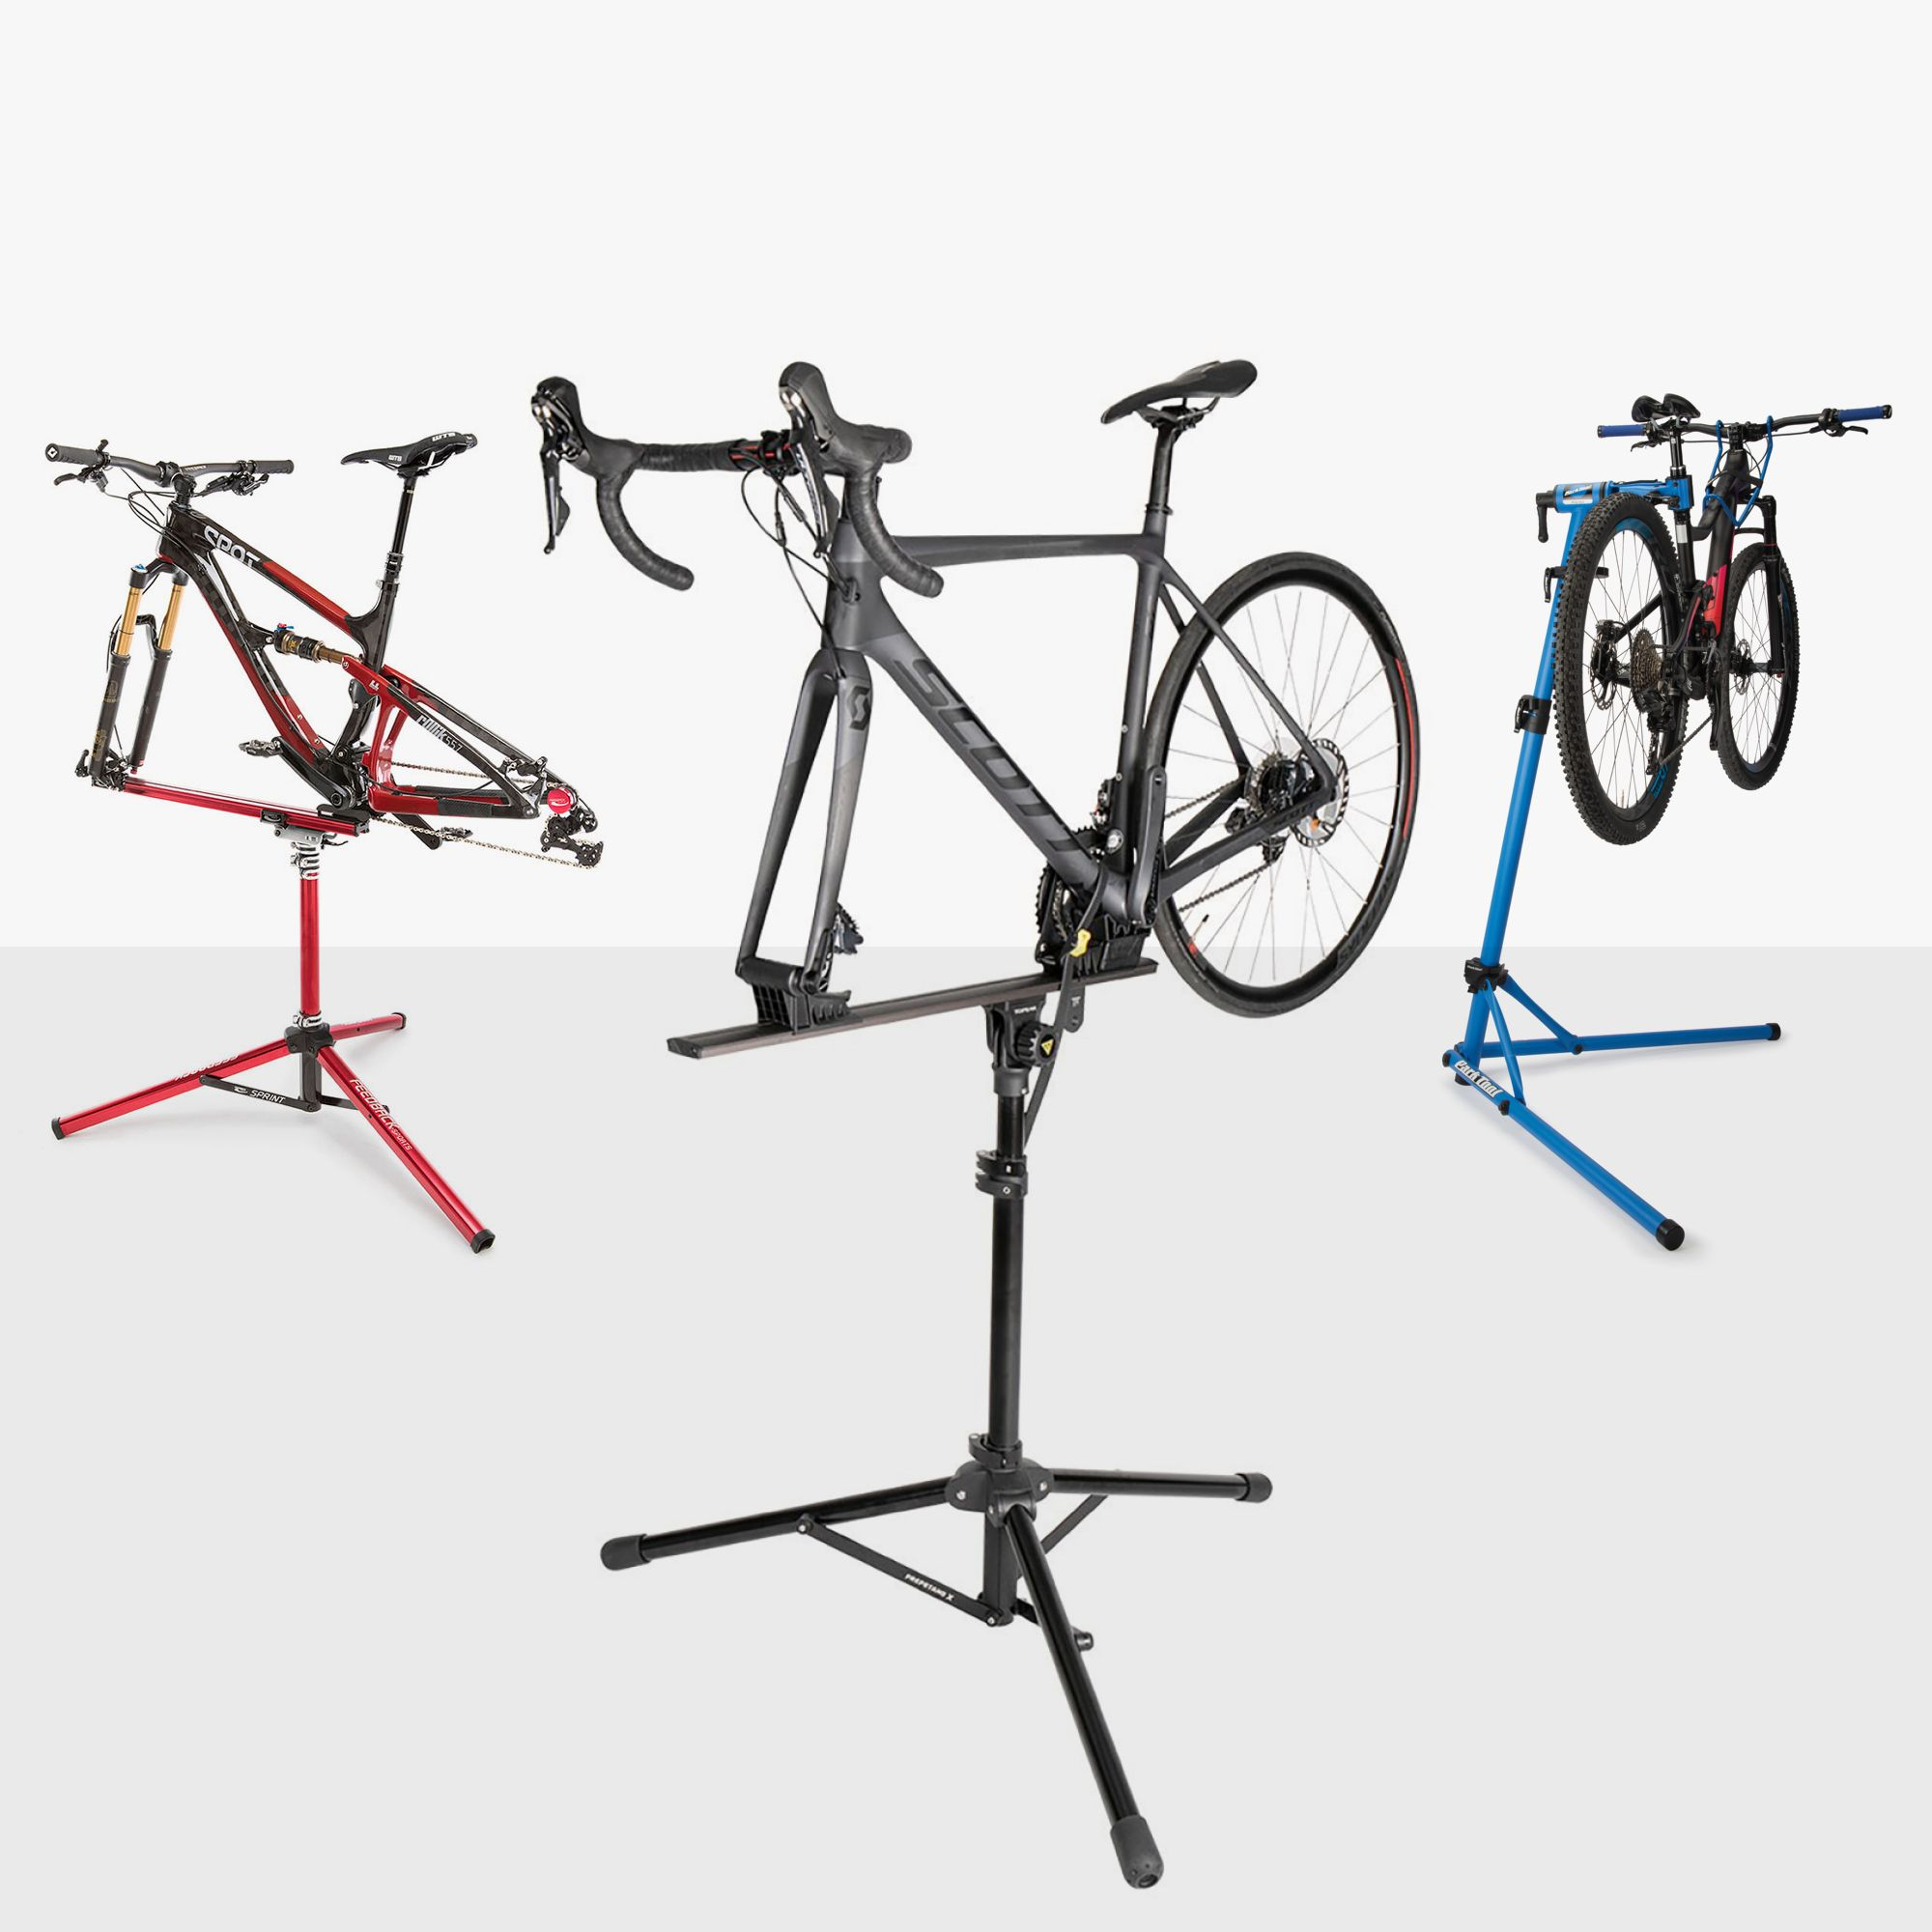 Best Bike Stands 2021 Work Stands For Bikes